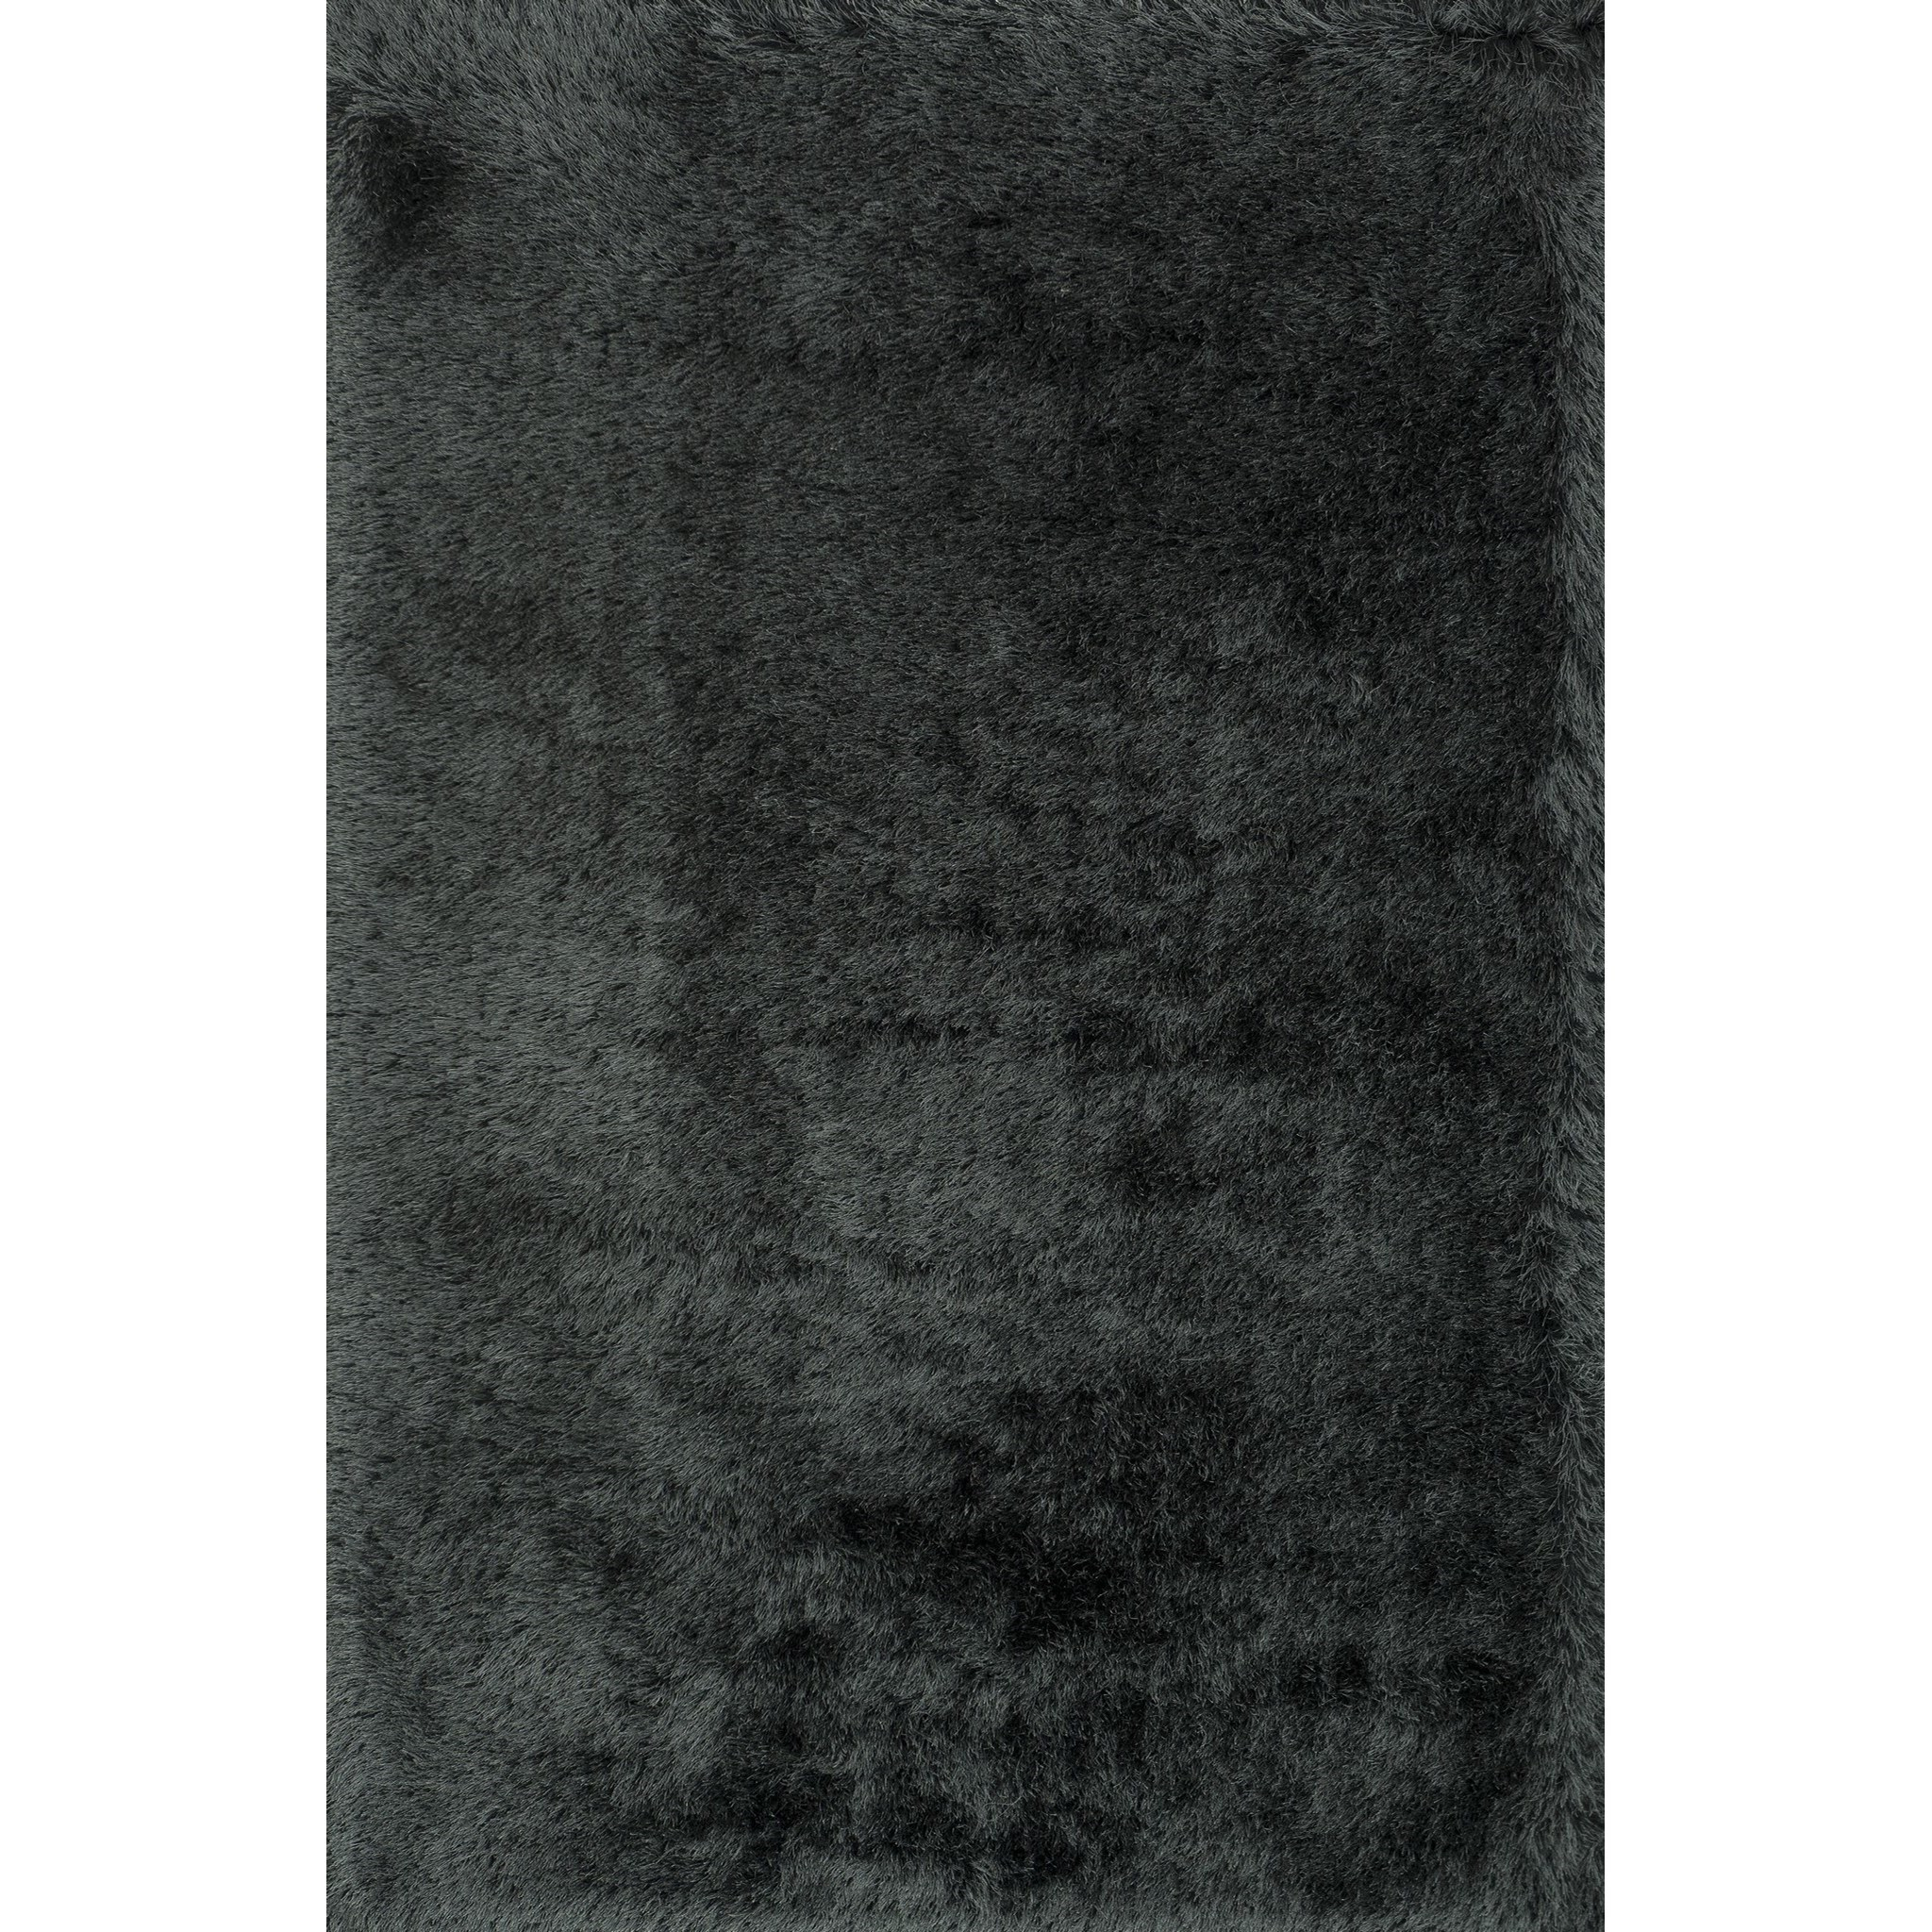 "Allure Shag 7'-6"" x 9'-6"" Area Rug by Loloi Rugs at Sprintz Furniture"